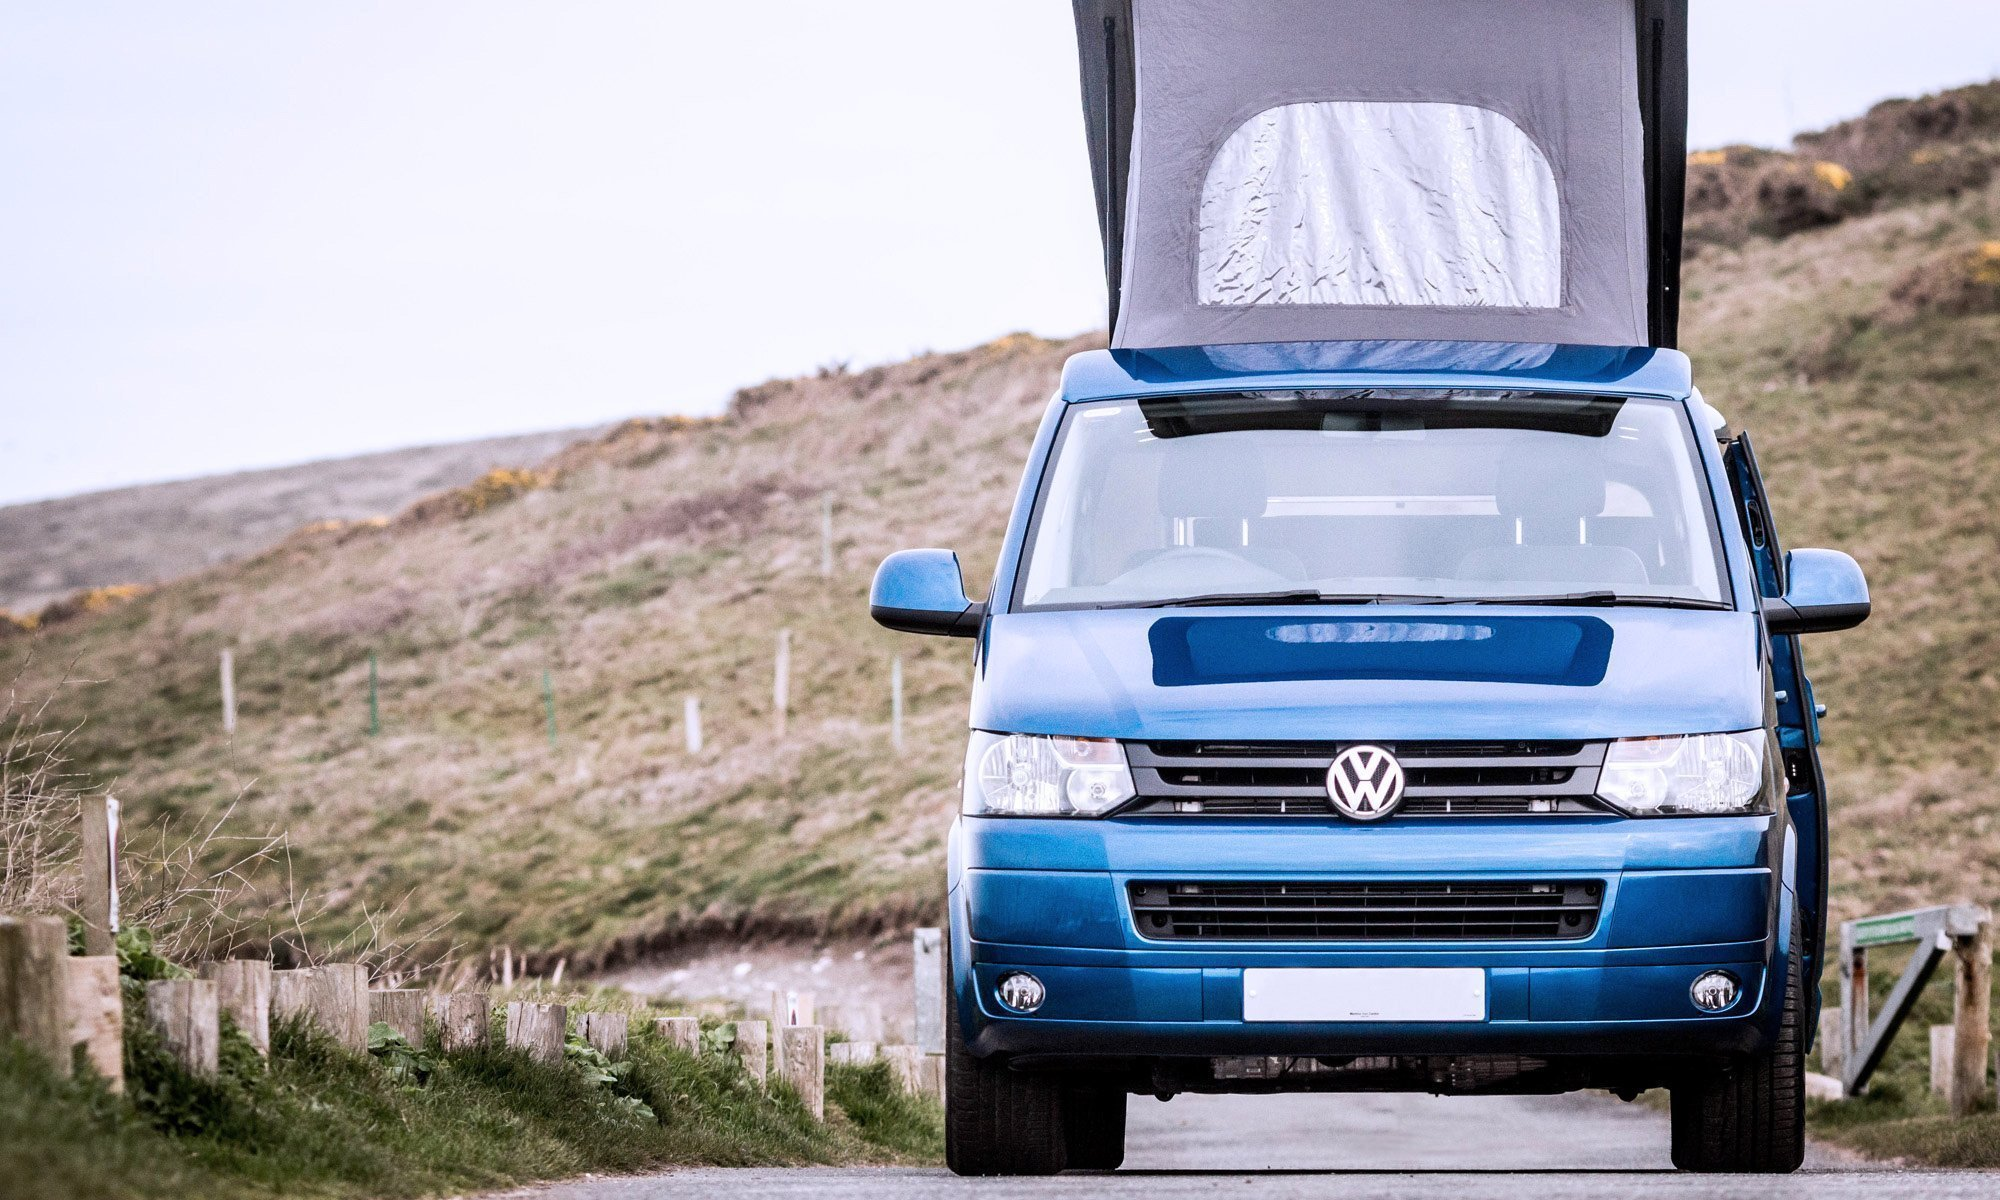 VW_Volkswagen_T5_T6_Transporter_conversion_campervan_Van_coilovers_sale-15-1